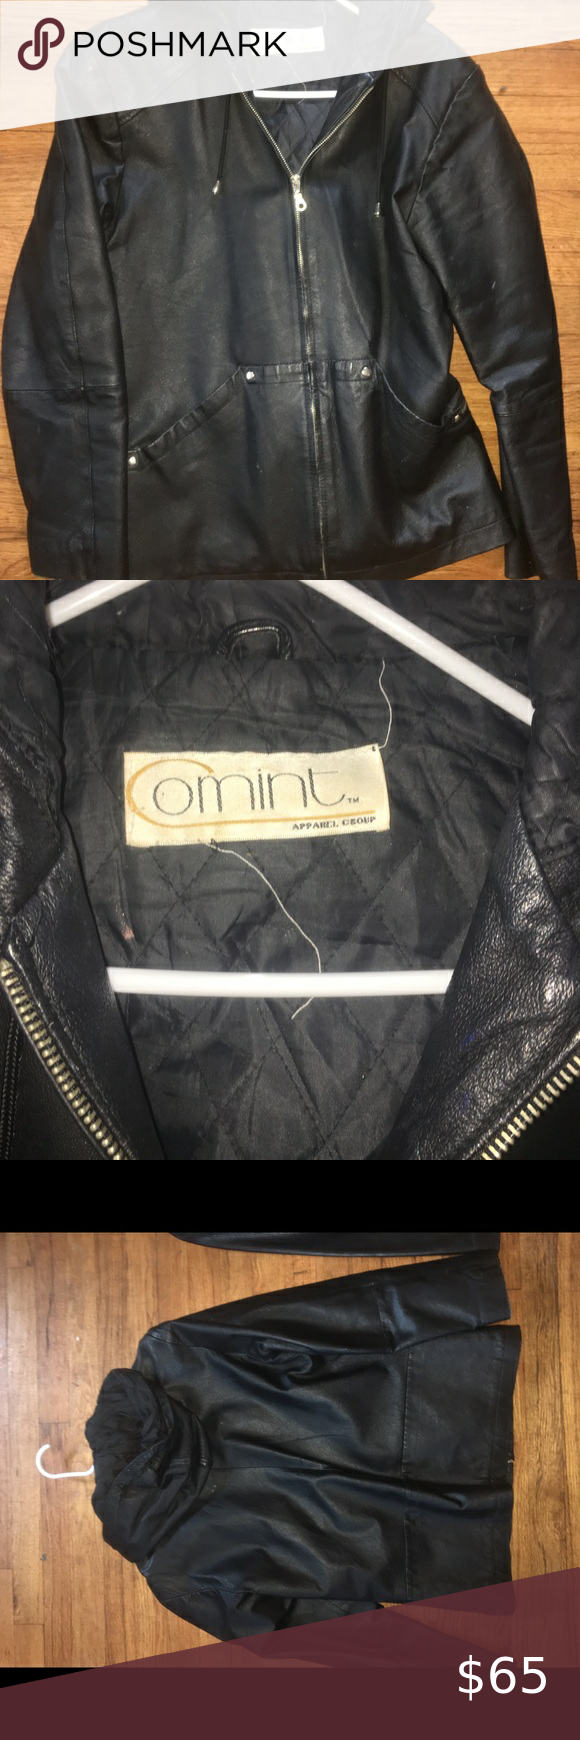 Comint Hooded Leather Jacket Barely Used Leather Jacket Been In A Closet Very Cute And Comfortable Comint Ja Leather Jacket With Hood Leather Jacket Jackets [ 1740 x 580 Pixel ]